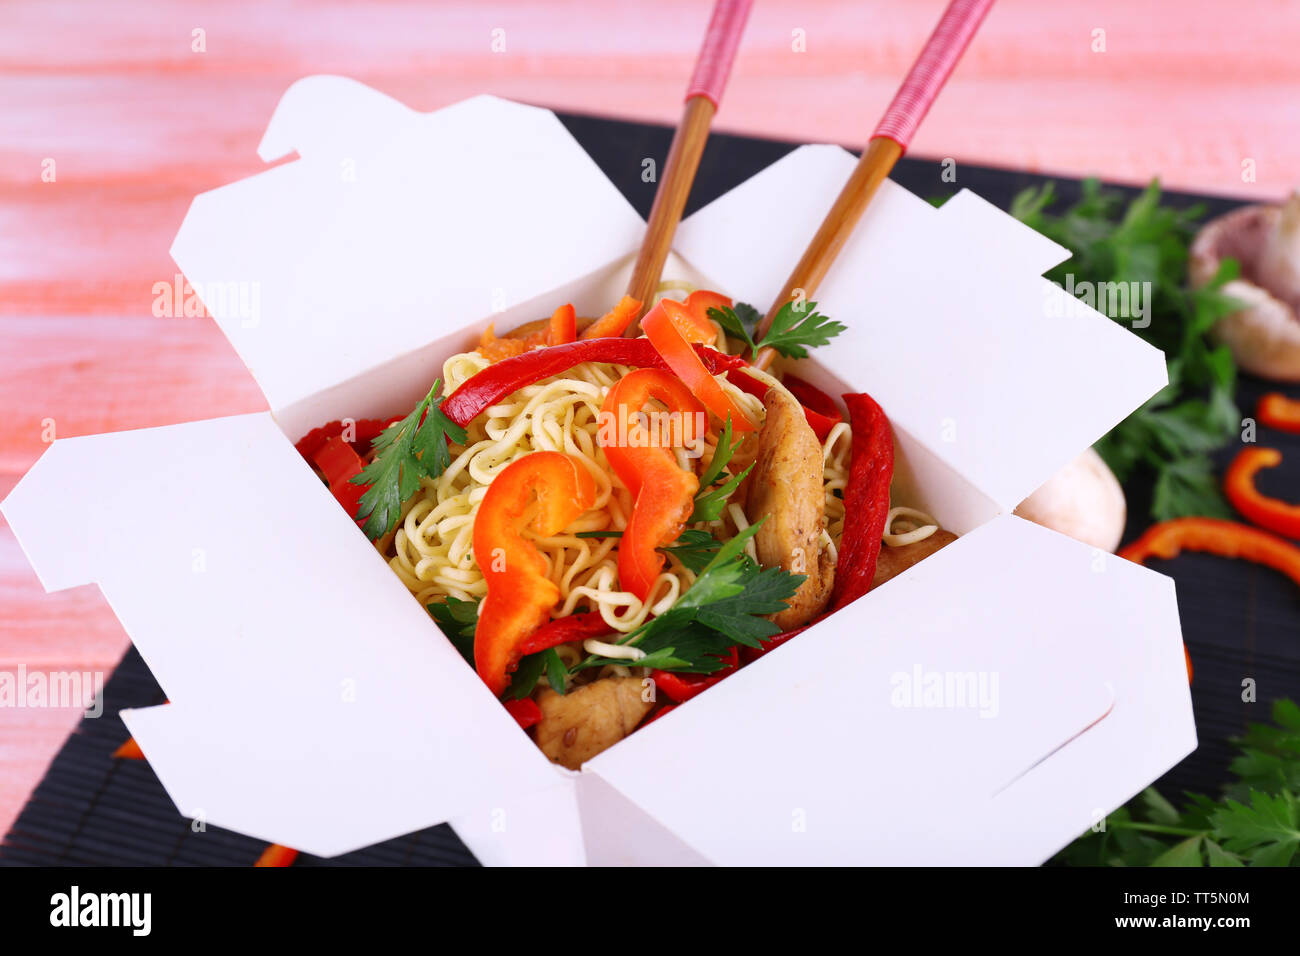 Chinese noodles and sticks in takeaway box on black mat on pink background - Stock Image